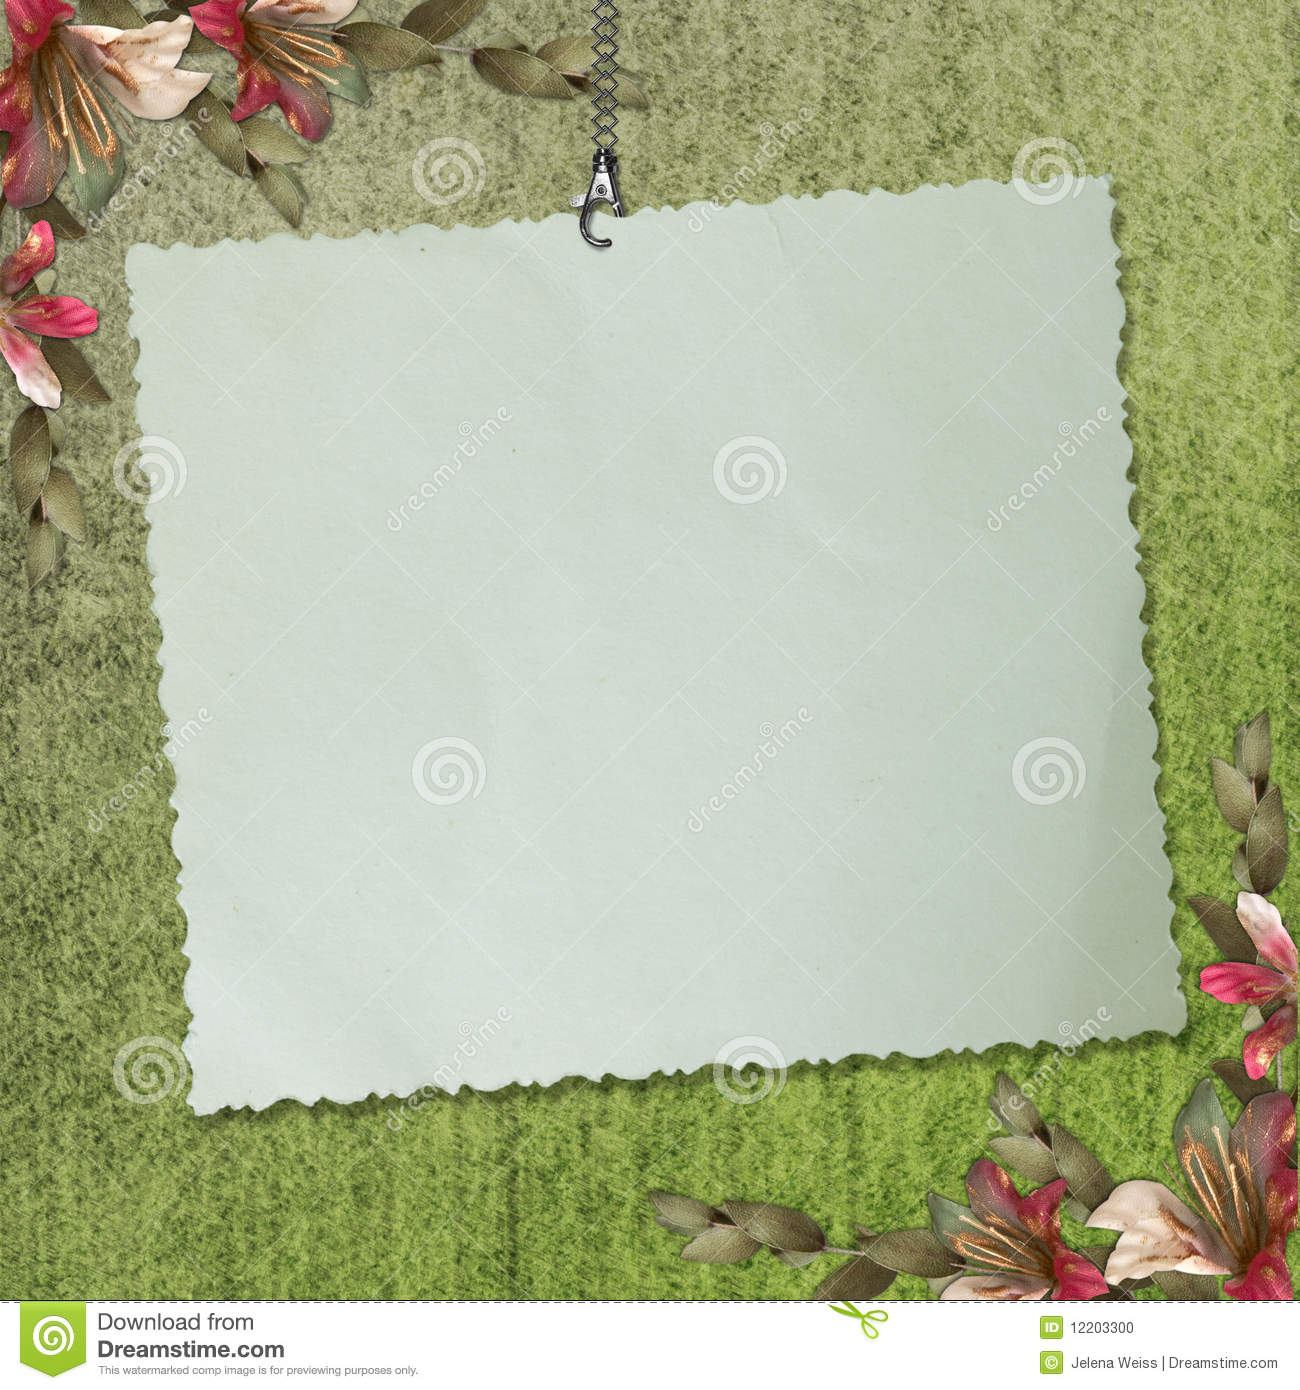 Scrapbook paper note - Blank Note Paper On Textured Background Stock Photo